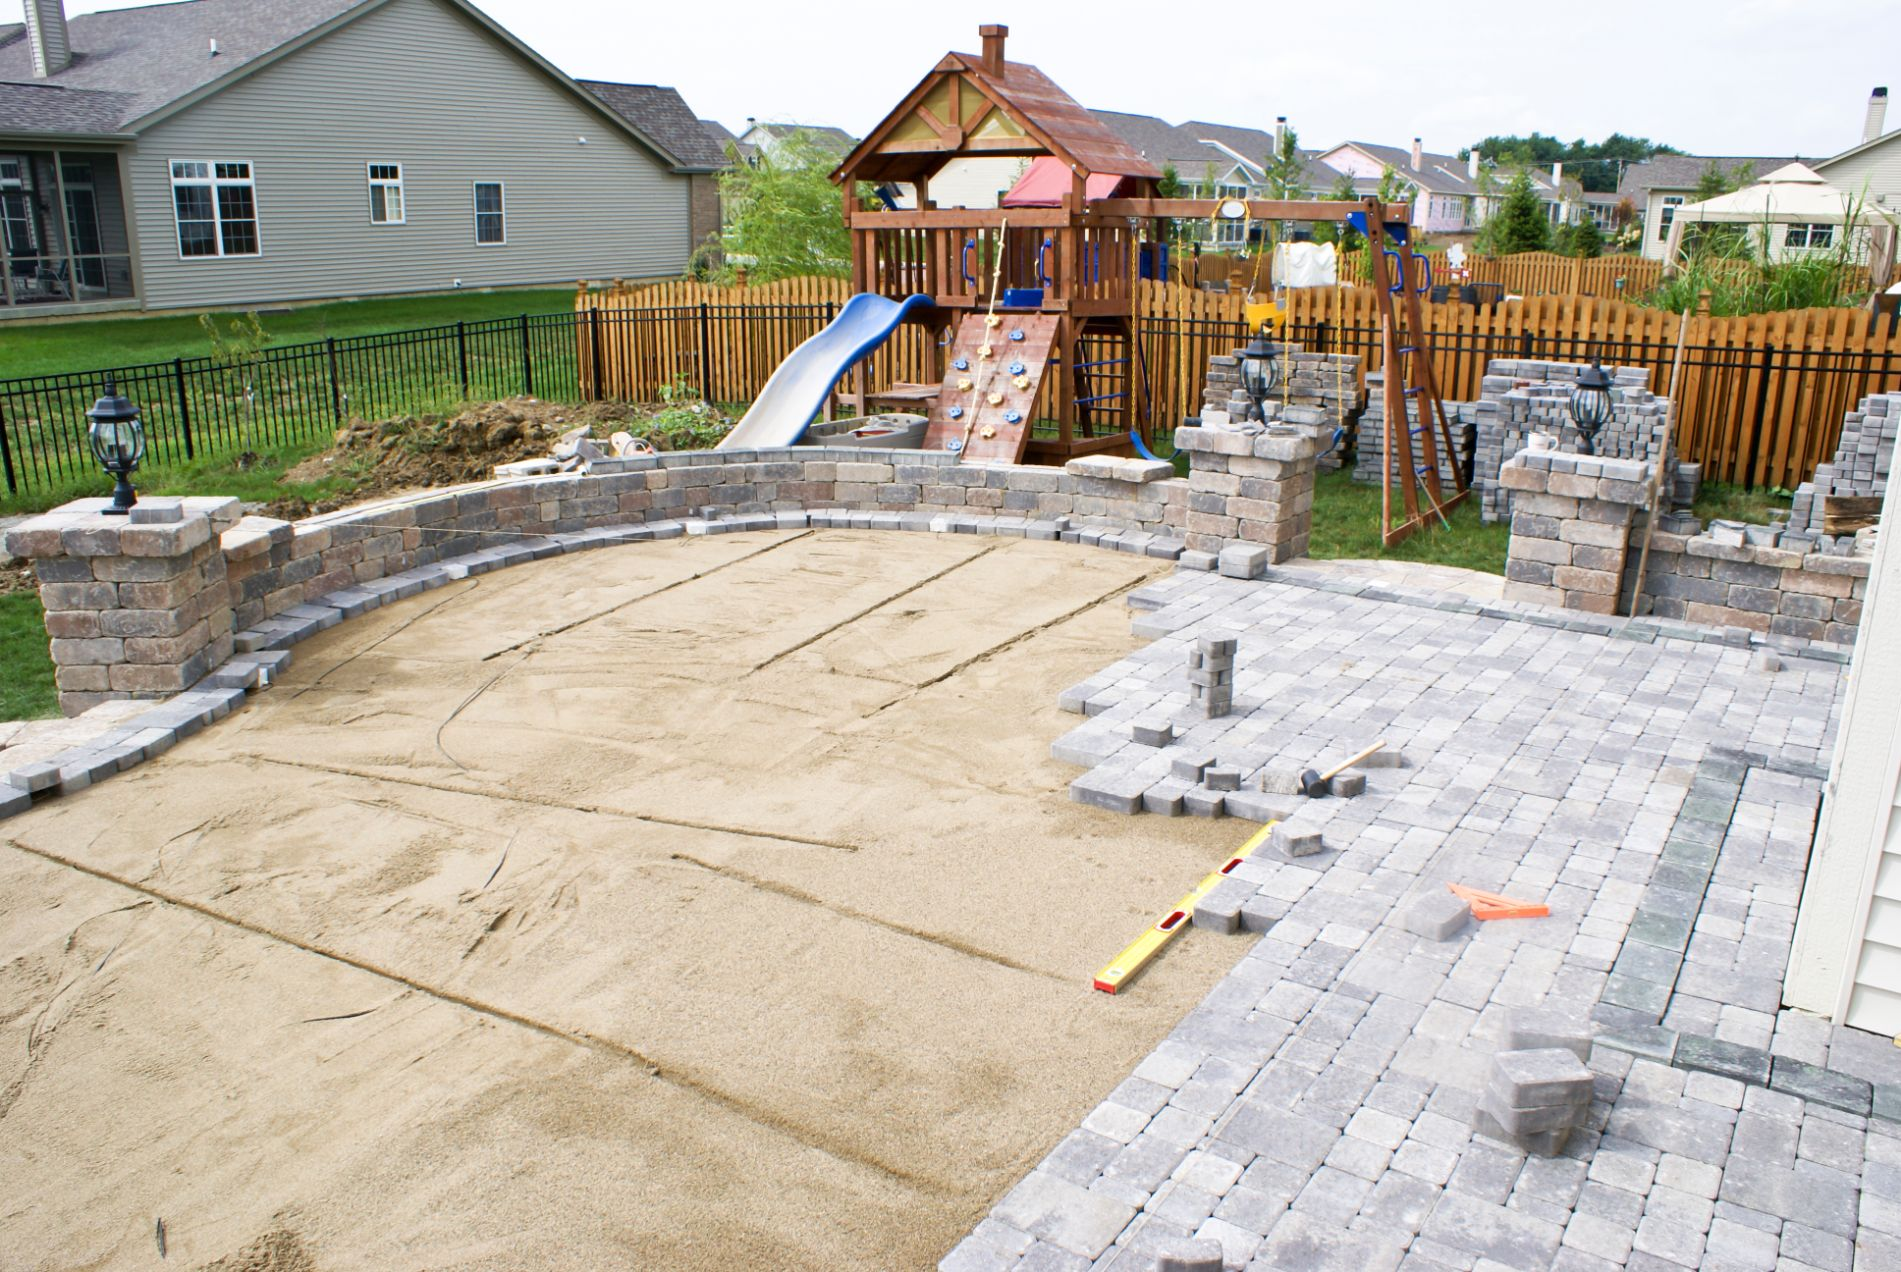 commercial paver contractor near houston texas